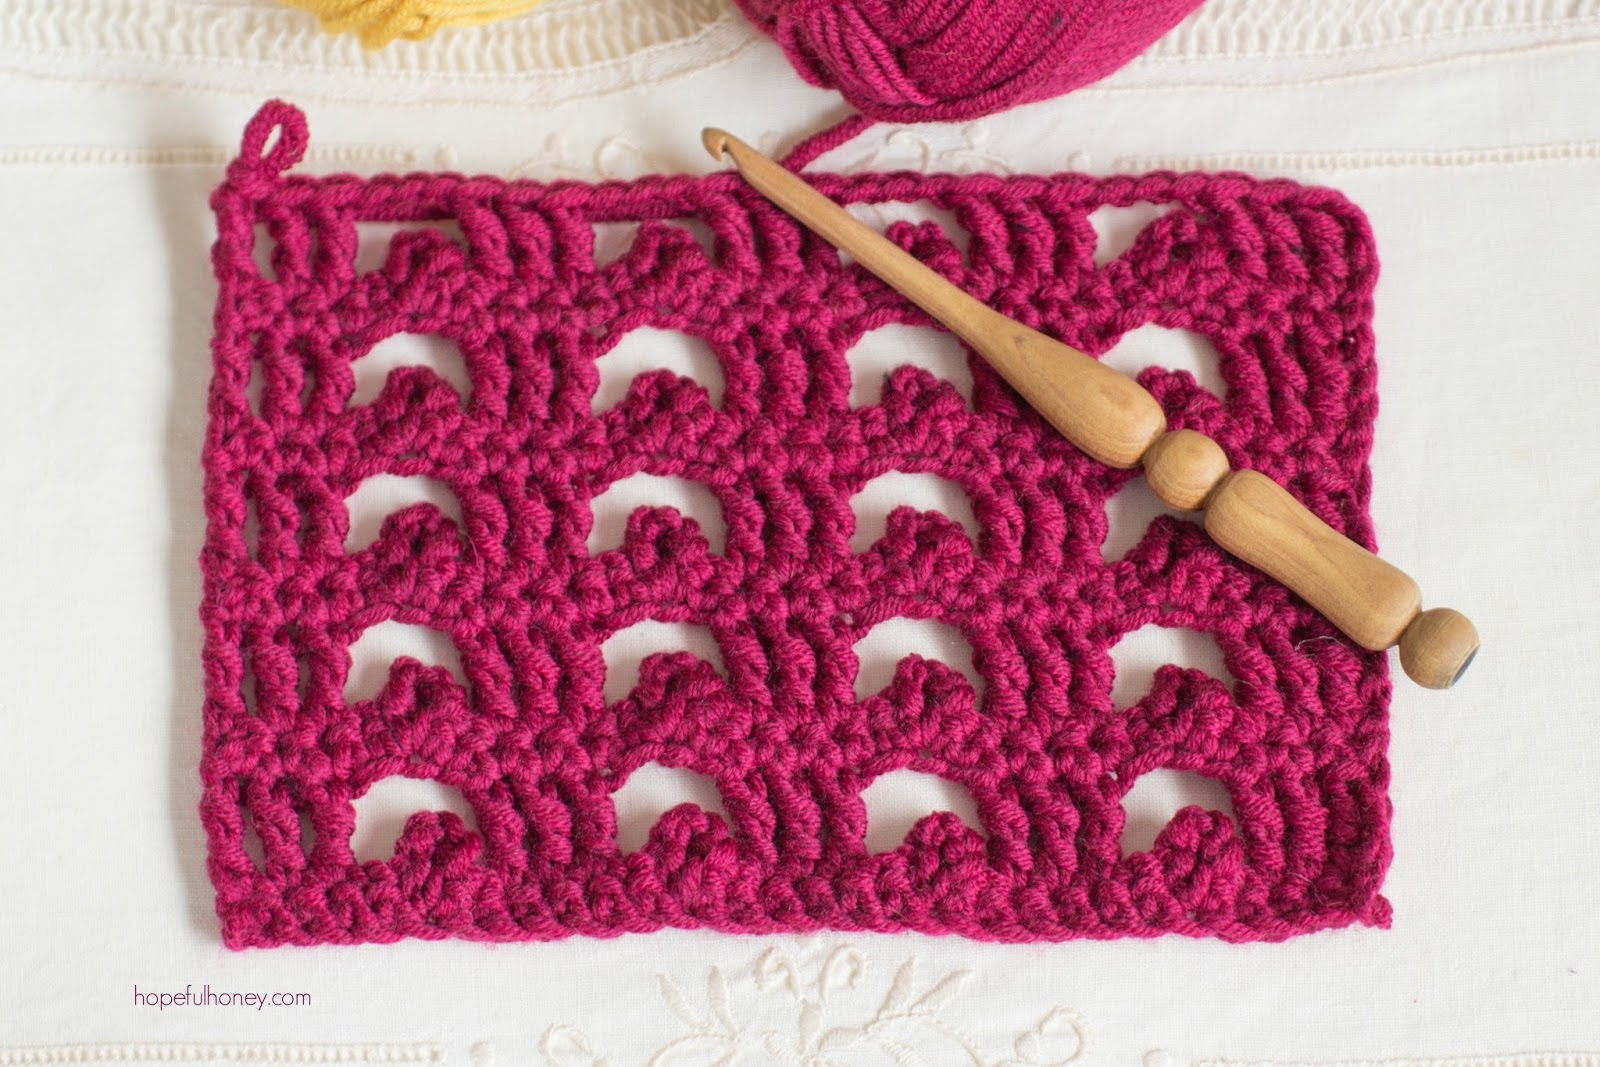 ... Crochet, Create: How To: Crochet The Boxed Picot Stitch - Easy